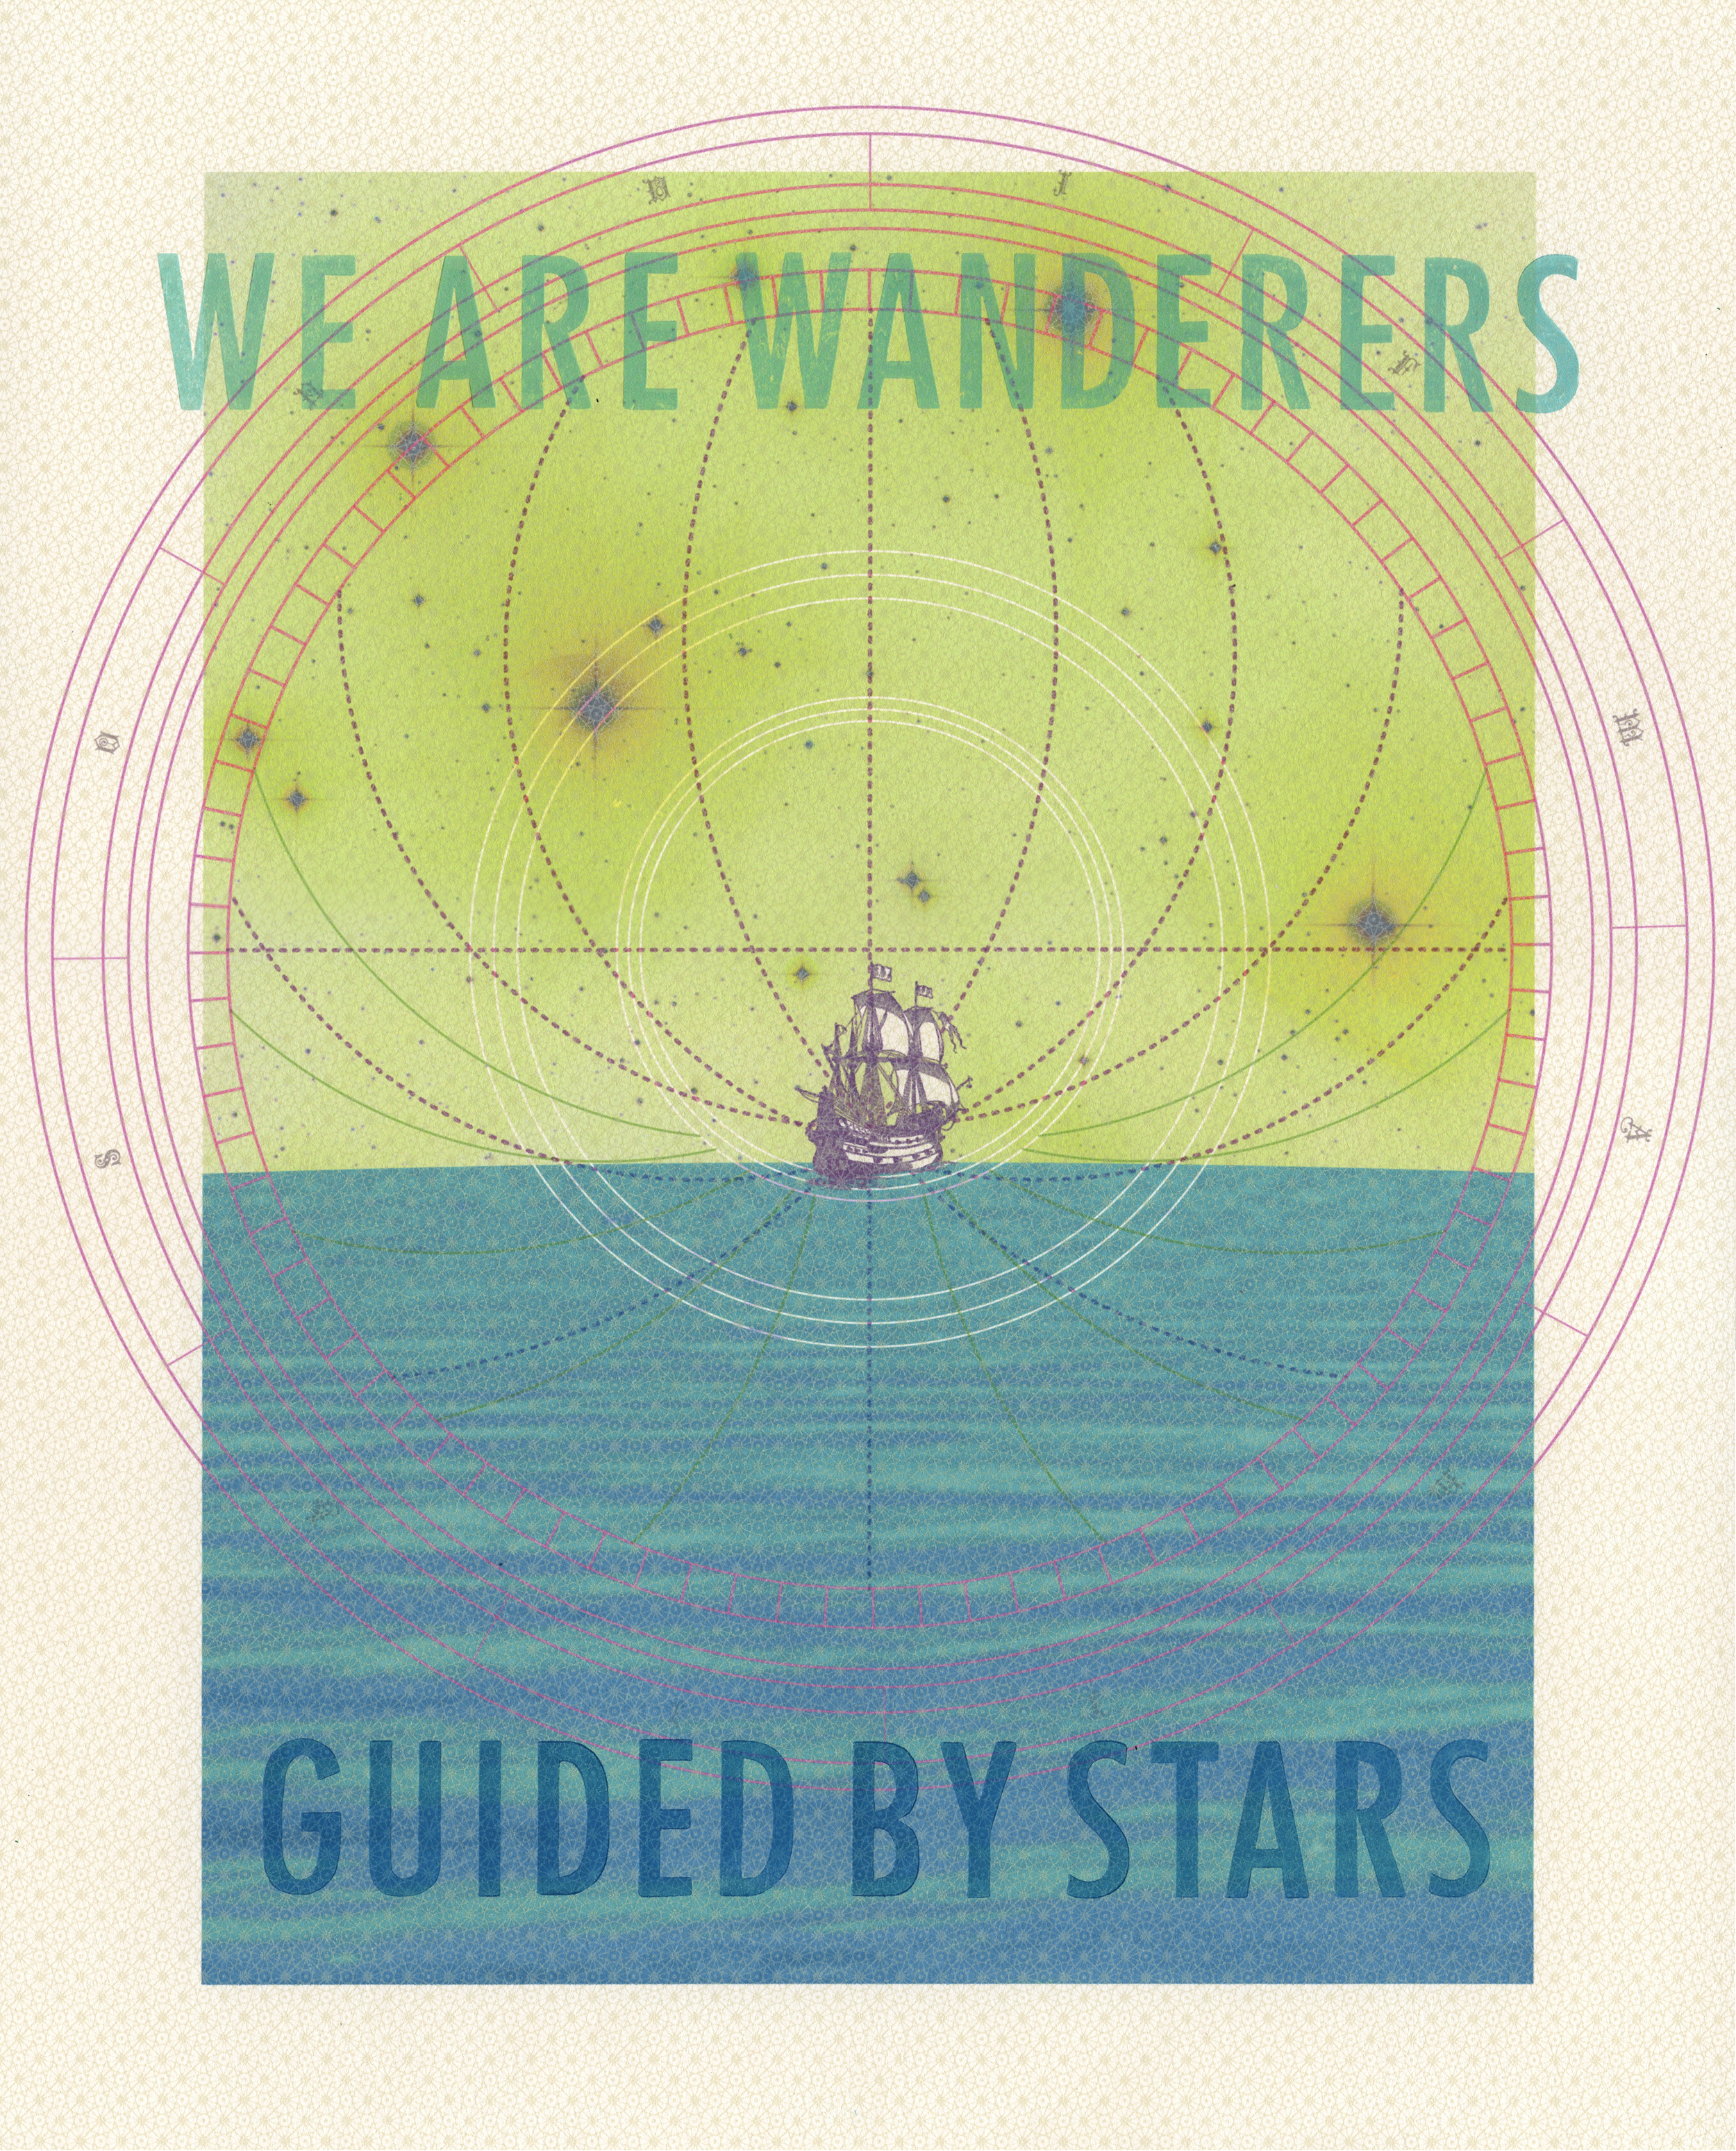 Wanderers_Barr_1.png